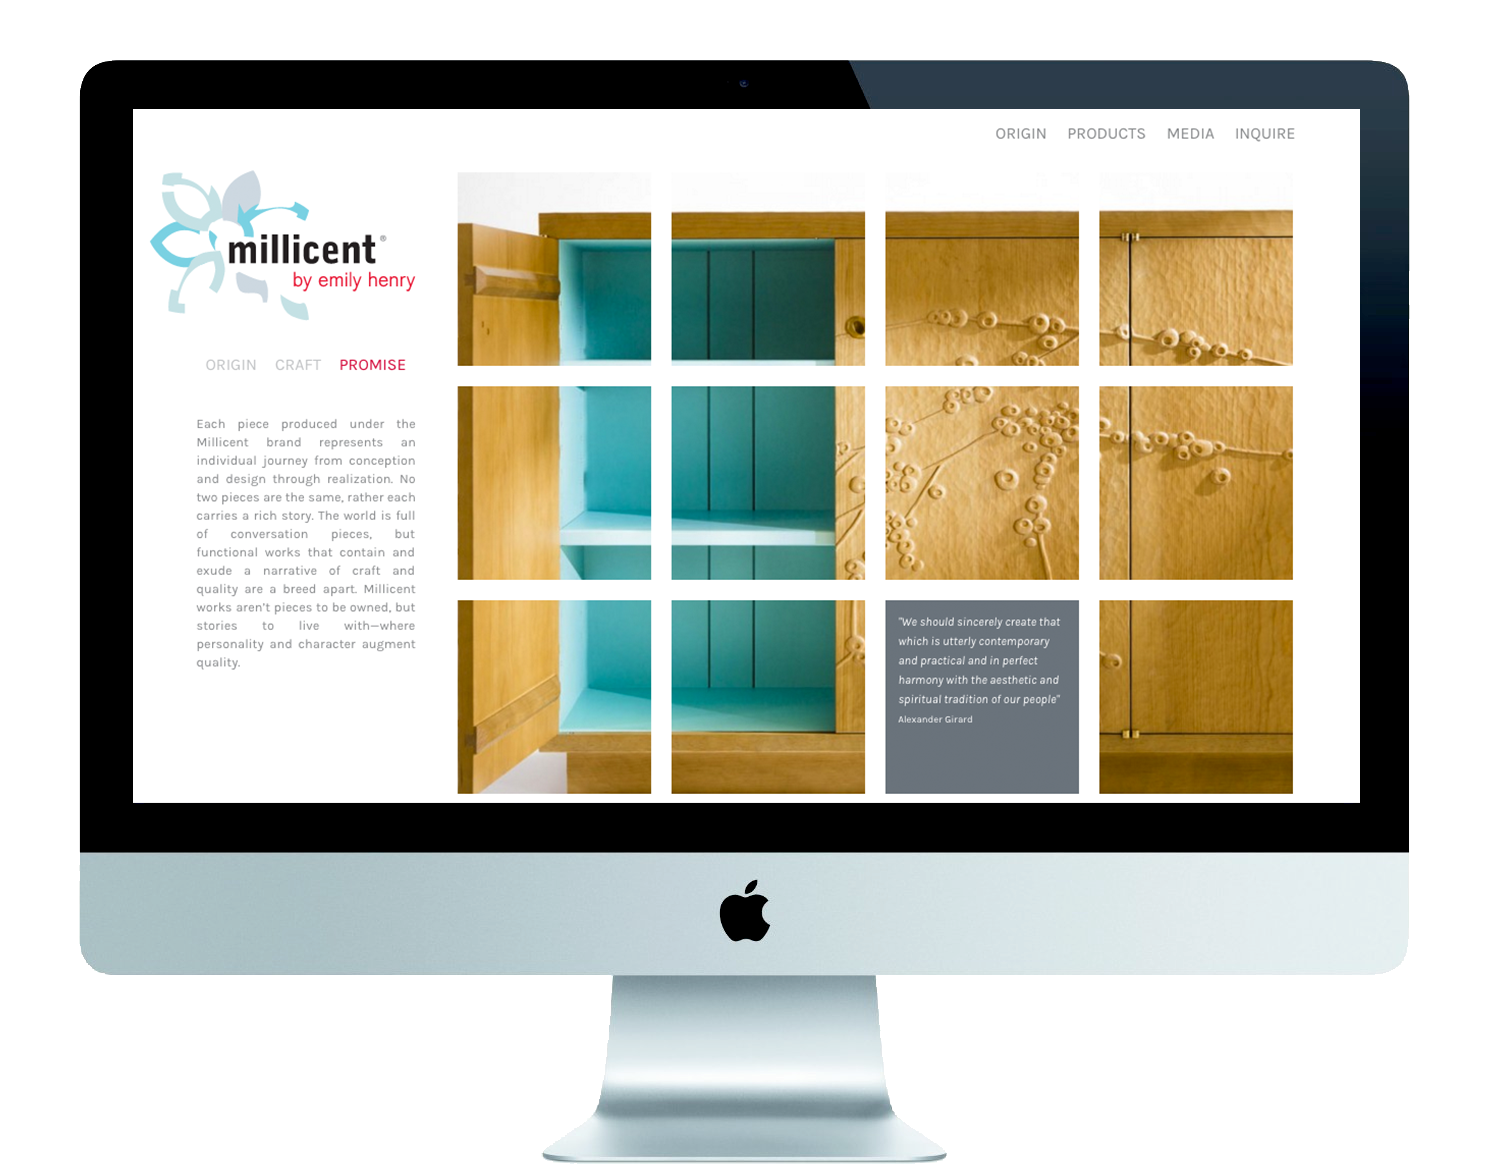 millicent-website-03